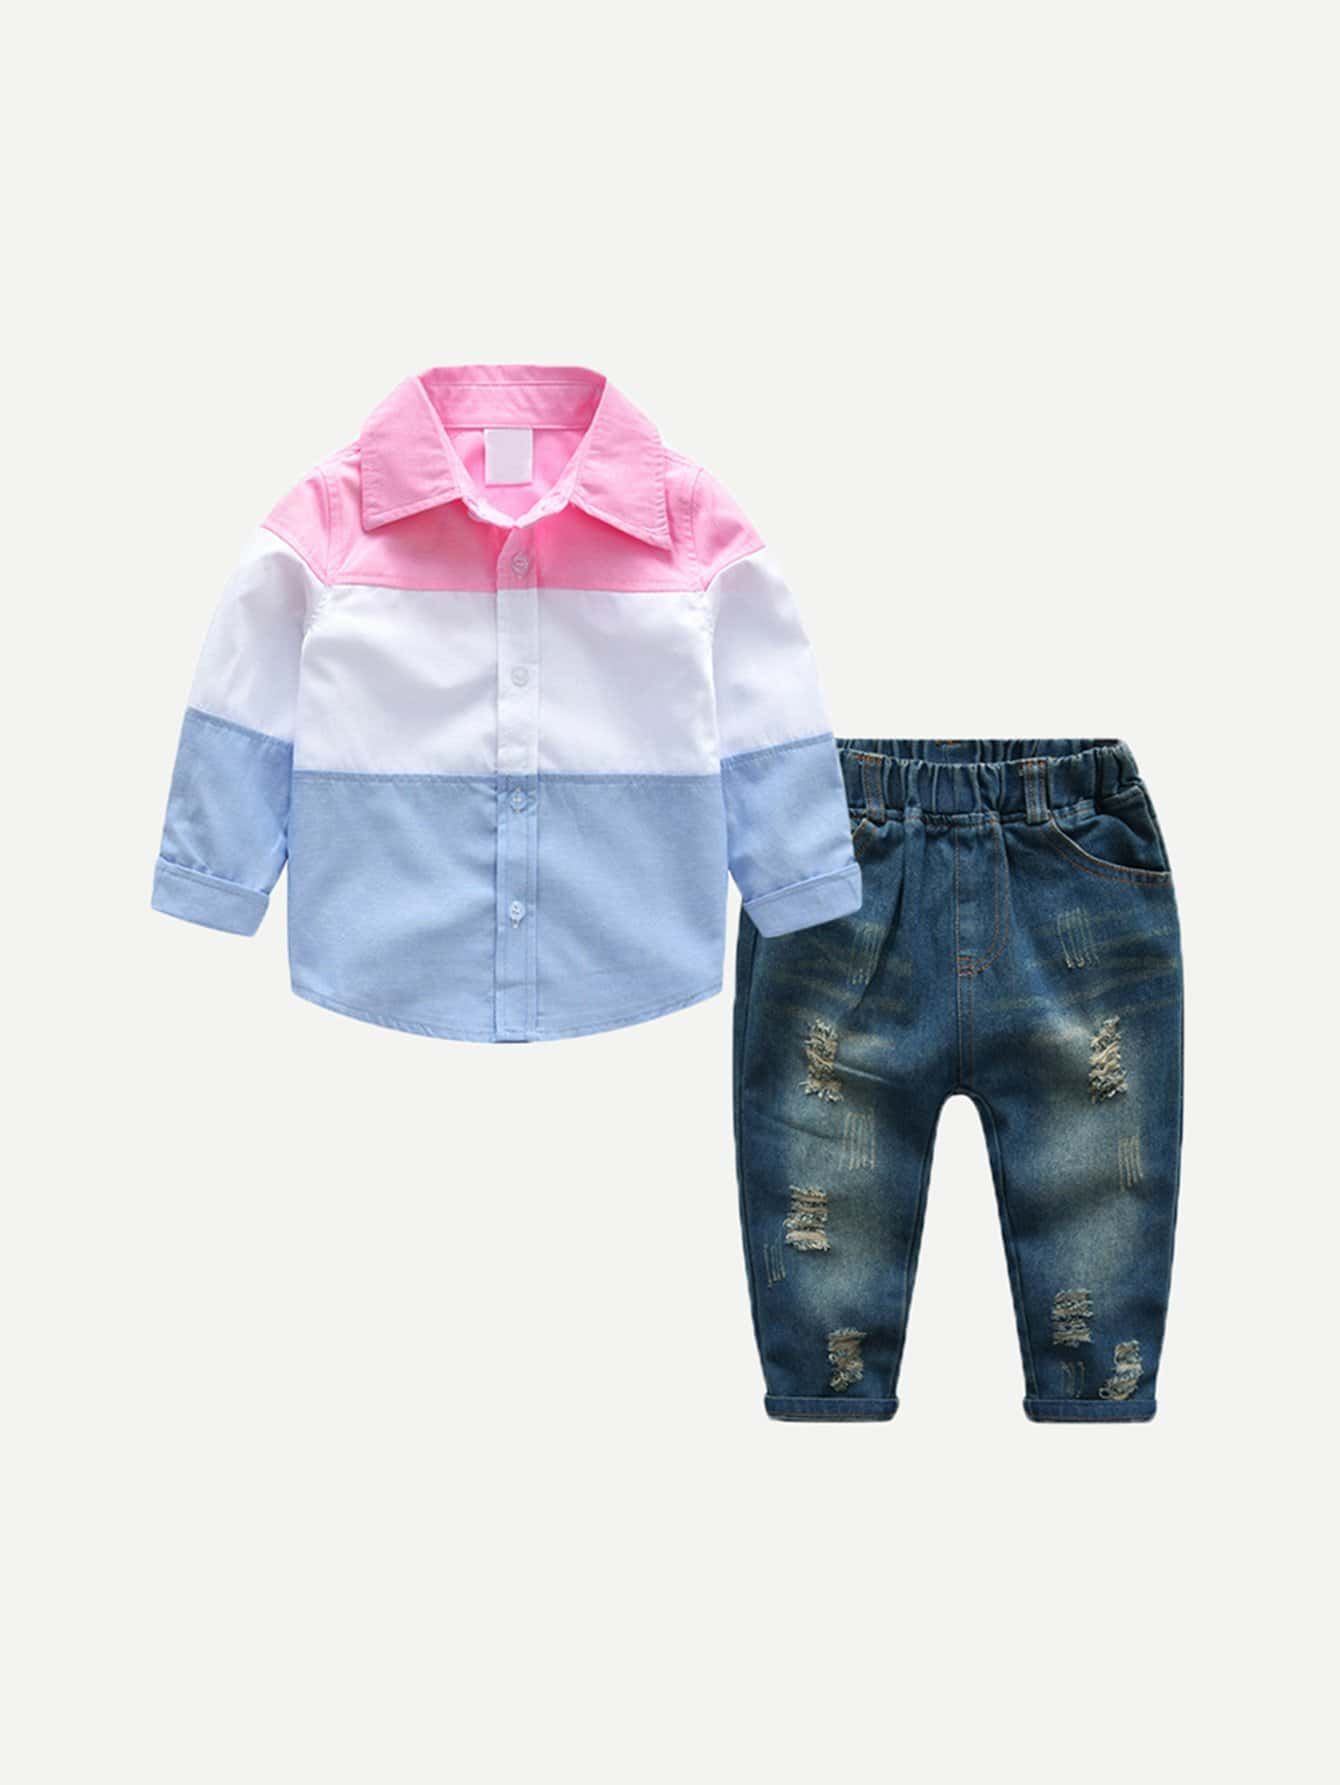 Kids Cut And Sew Panel Shirt With Jeans happy homemade  sew chic kids  20